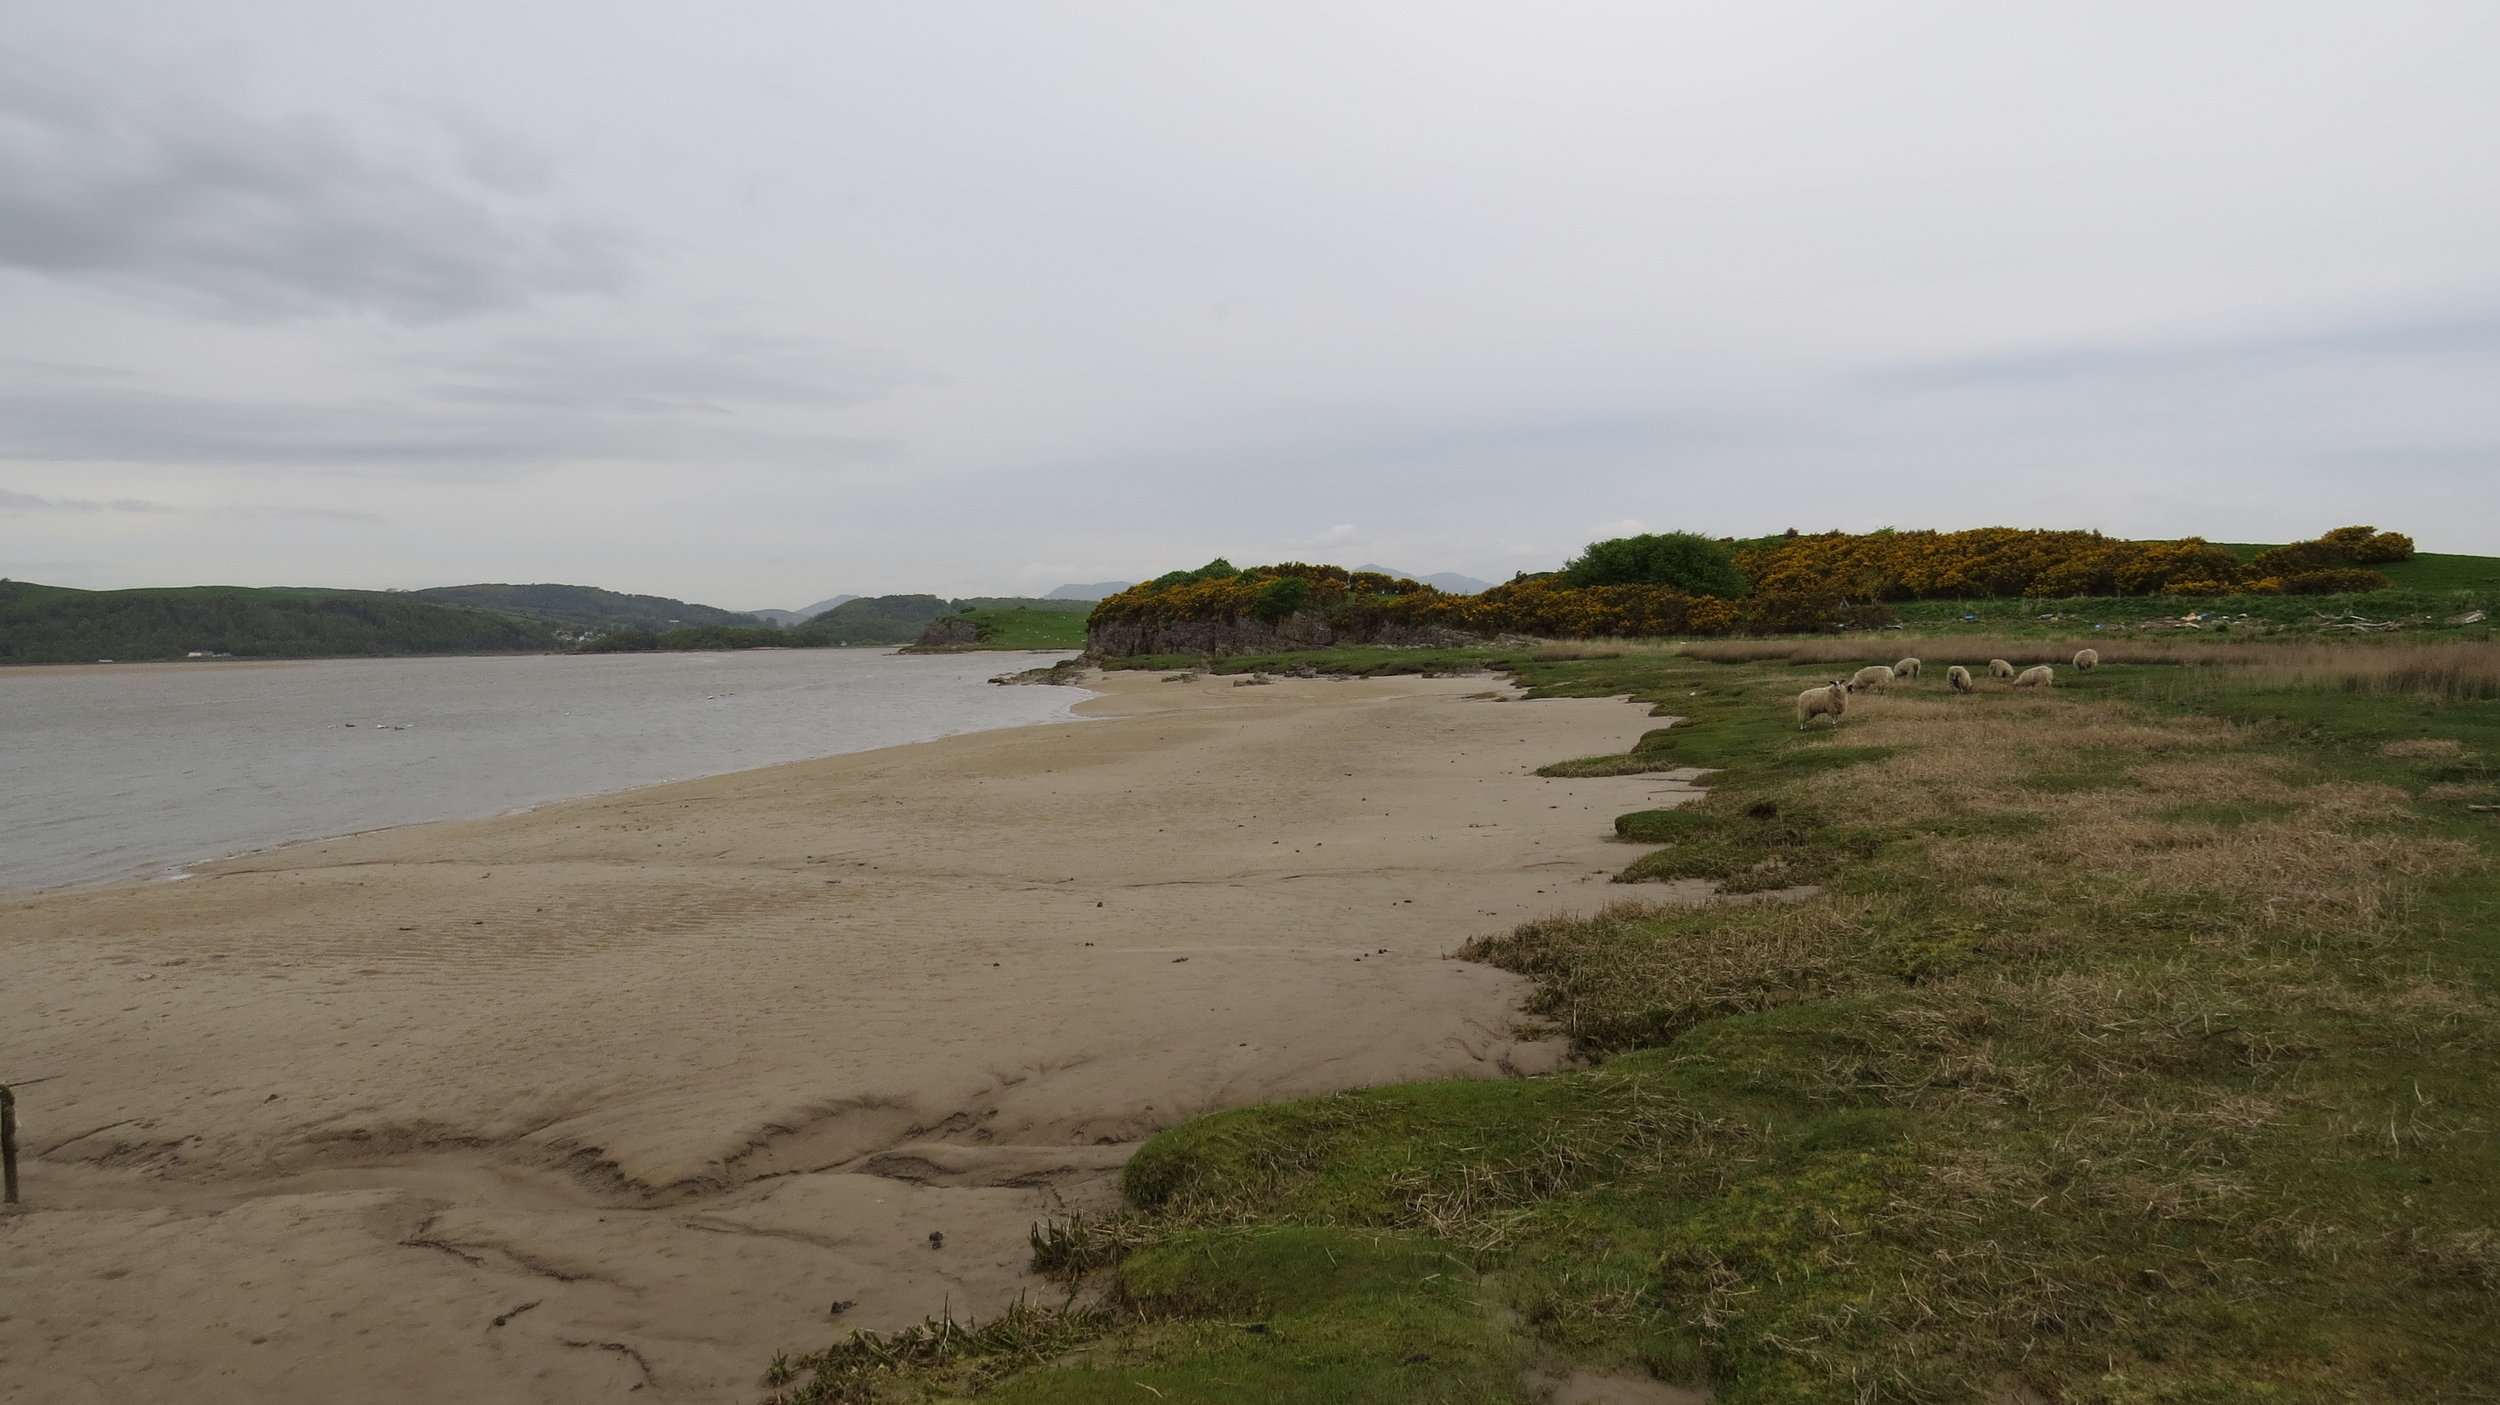 Lower Frith Sands